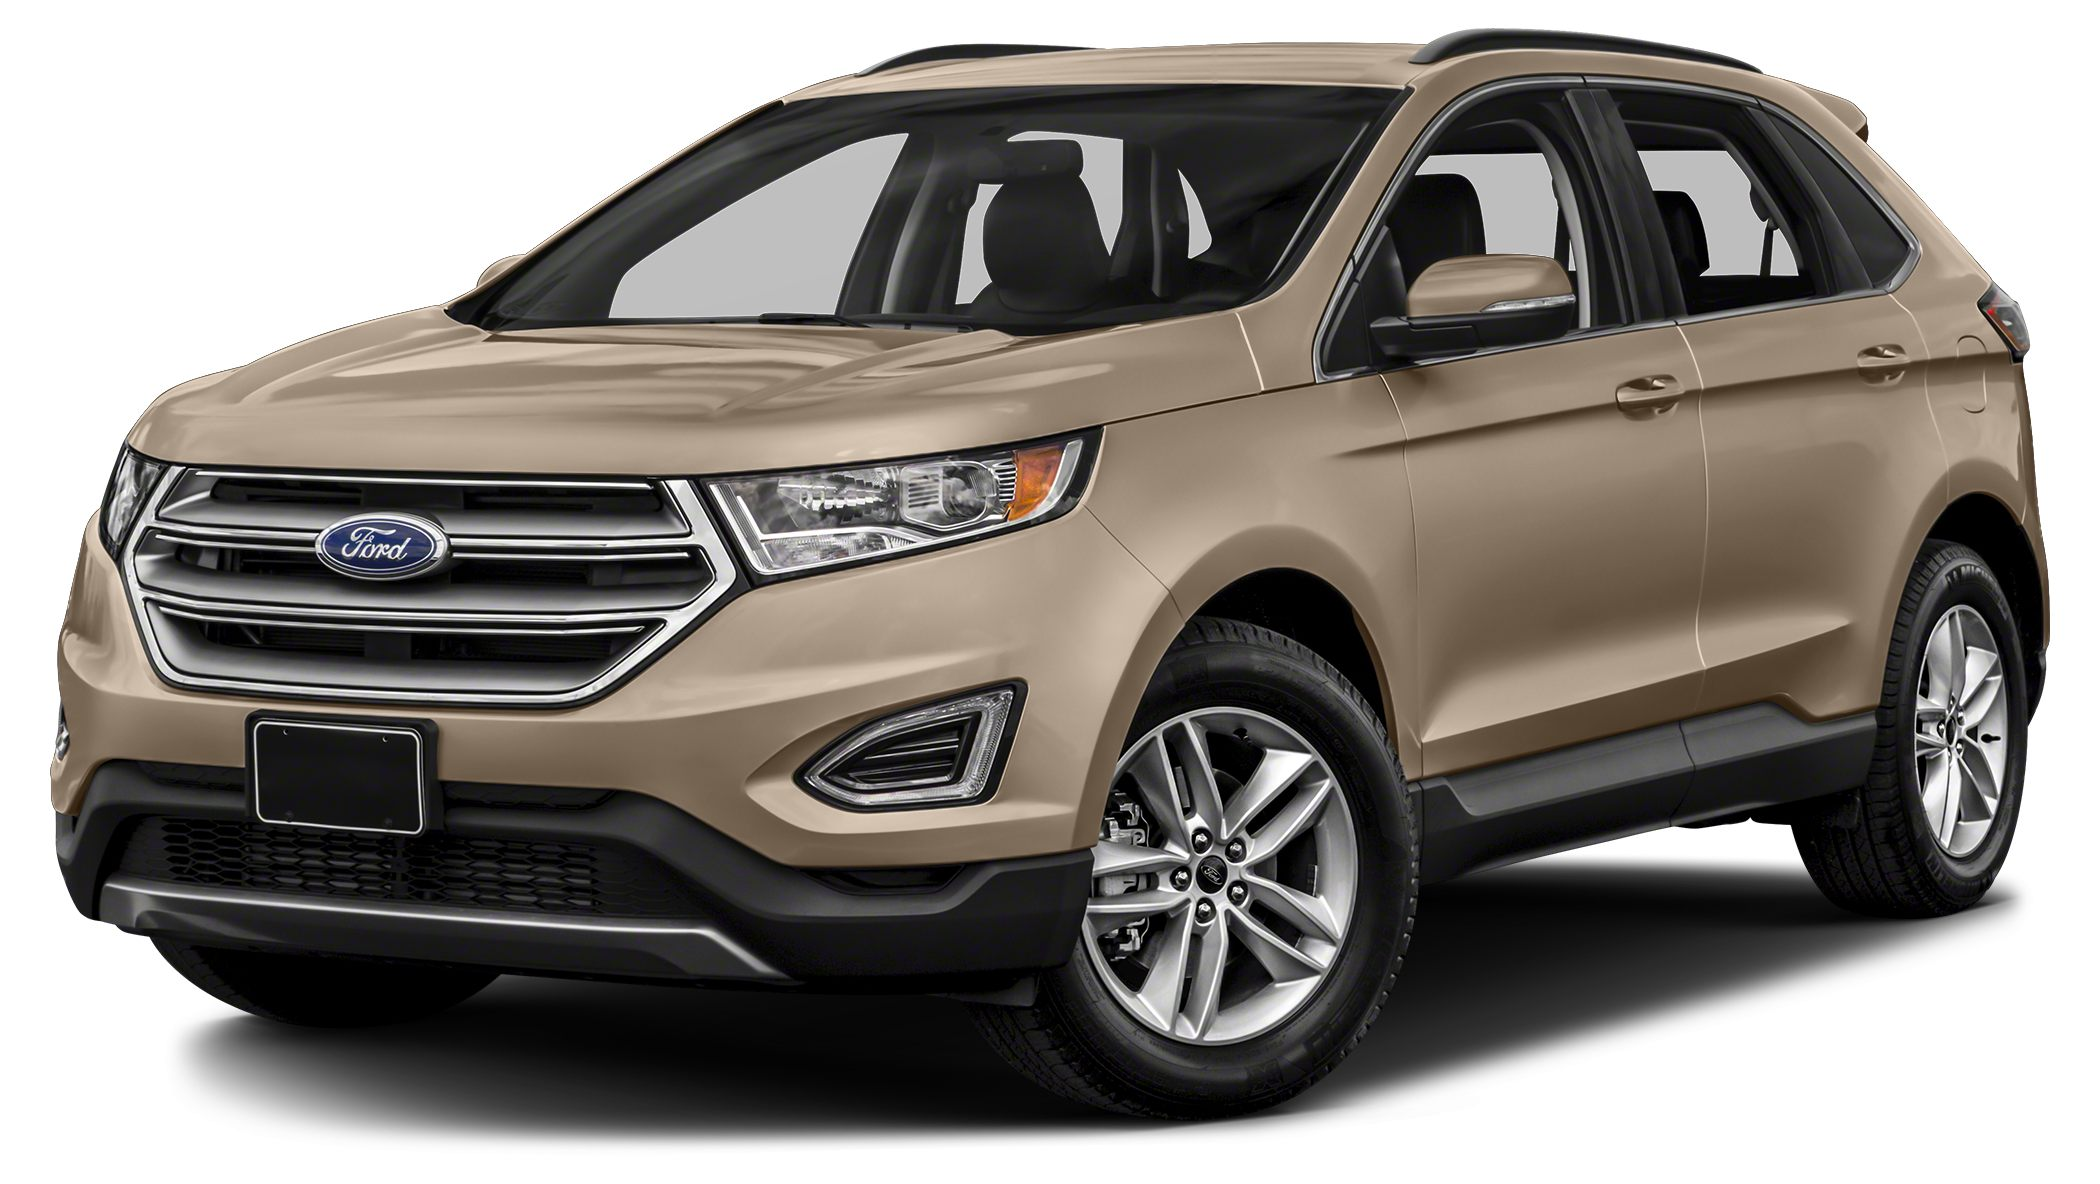 2017 Ford Edge Titanium 2017 Ford Edge Titanium 2617 HighwayCity MPG Price includes 1000 - Fo